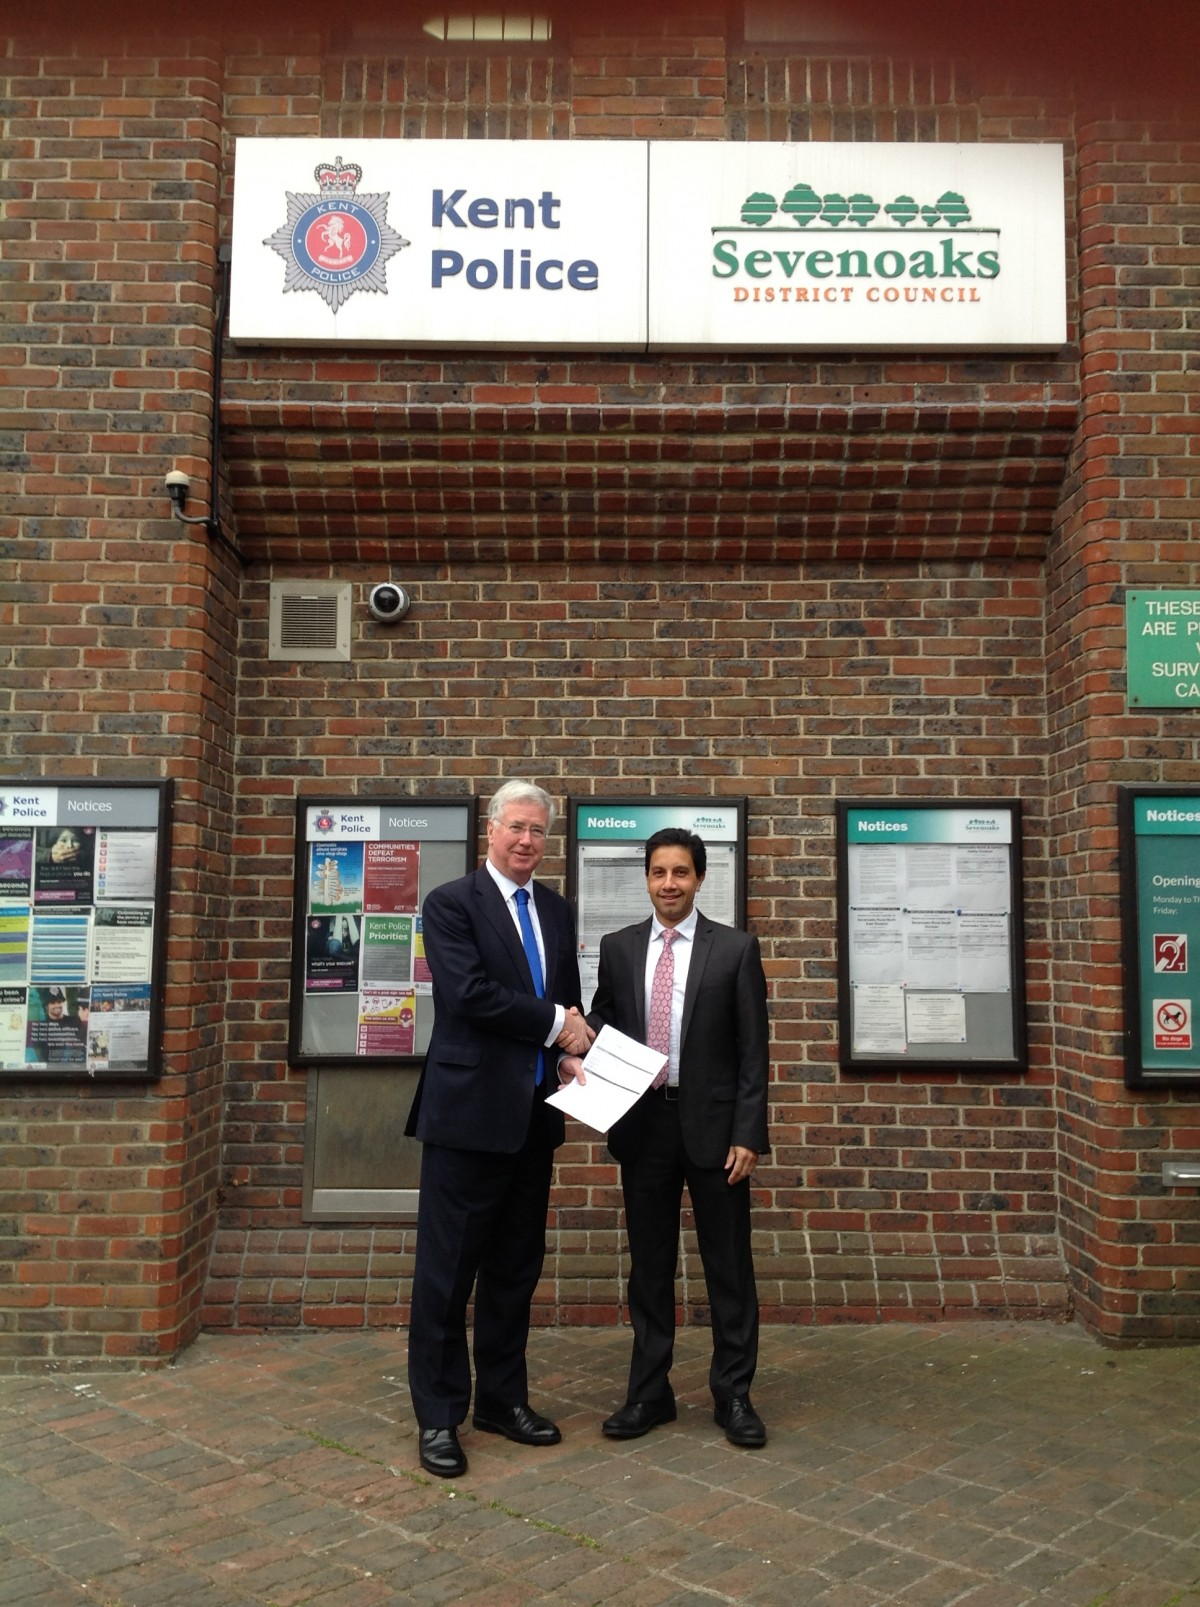 Michael becomes official Conservative candidate for Sevenoaks